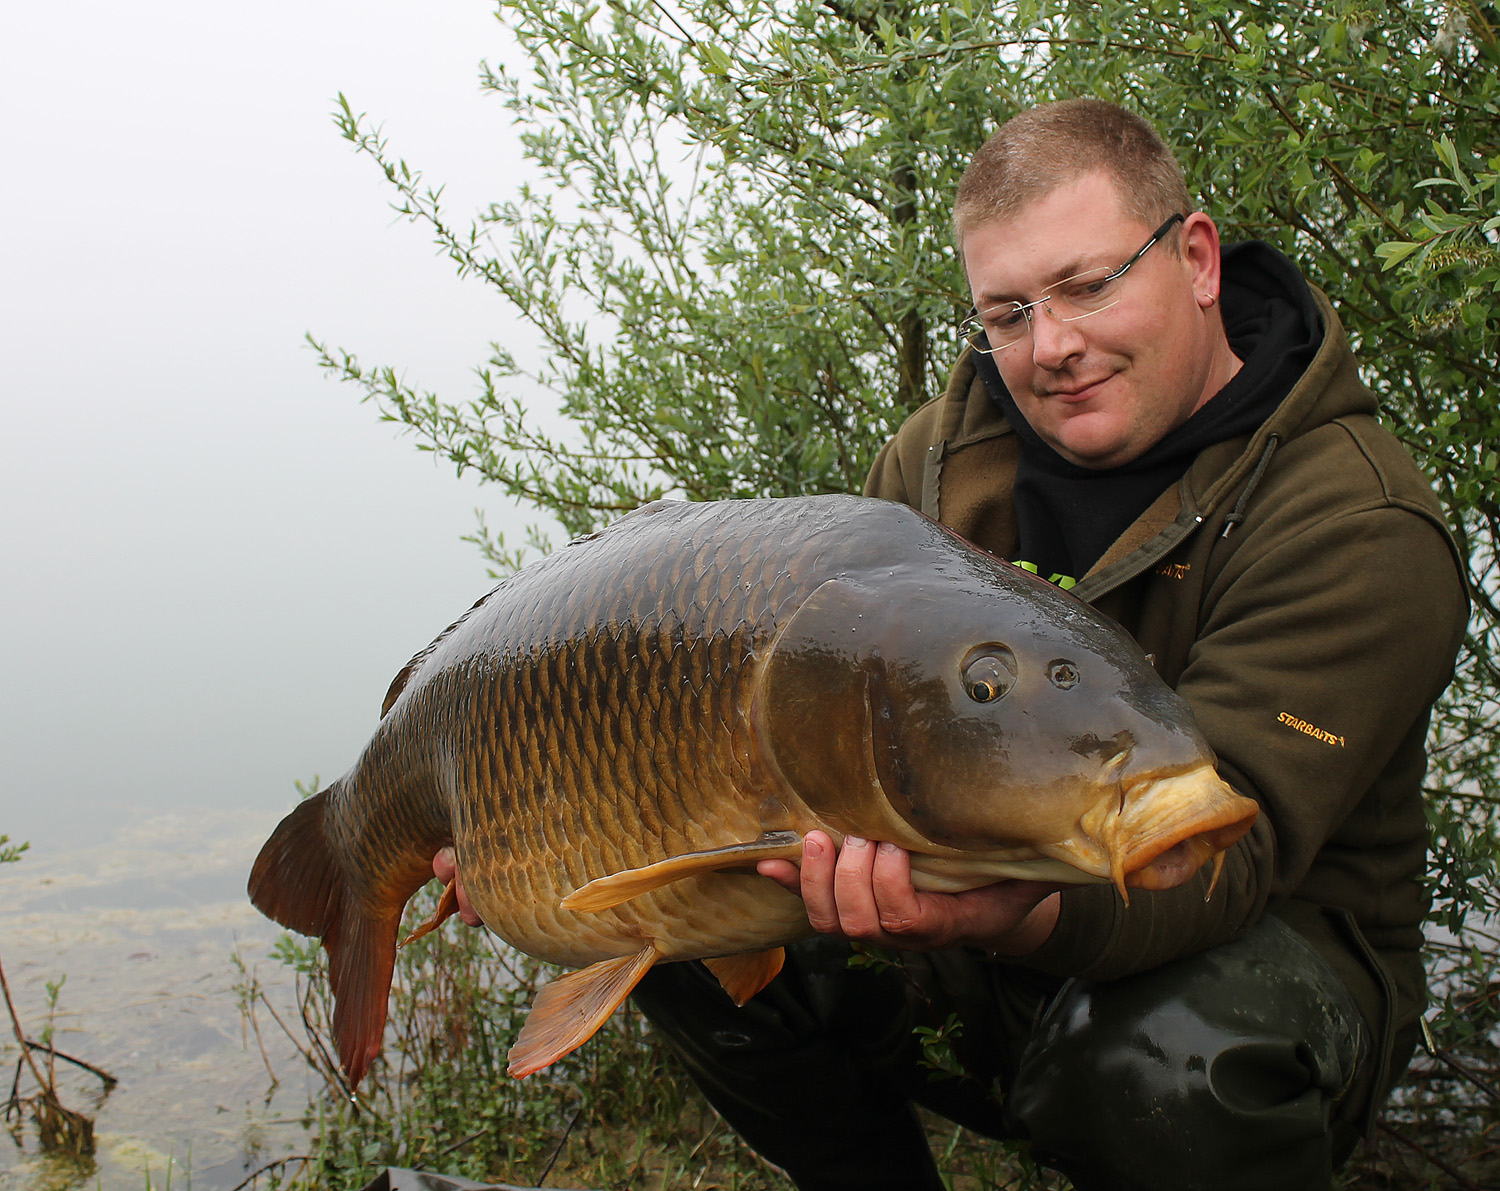 http://starbaits.com/fichiers/images/team/gallery/THIERRY_Vincent/photo5-THIERRY-Vincent.JPG